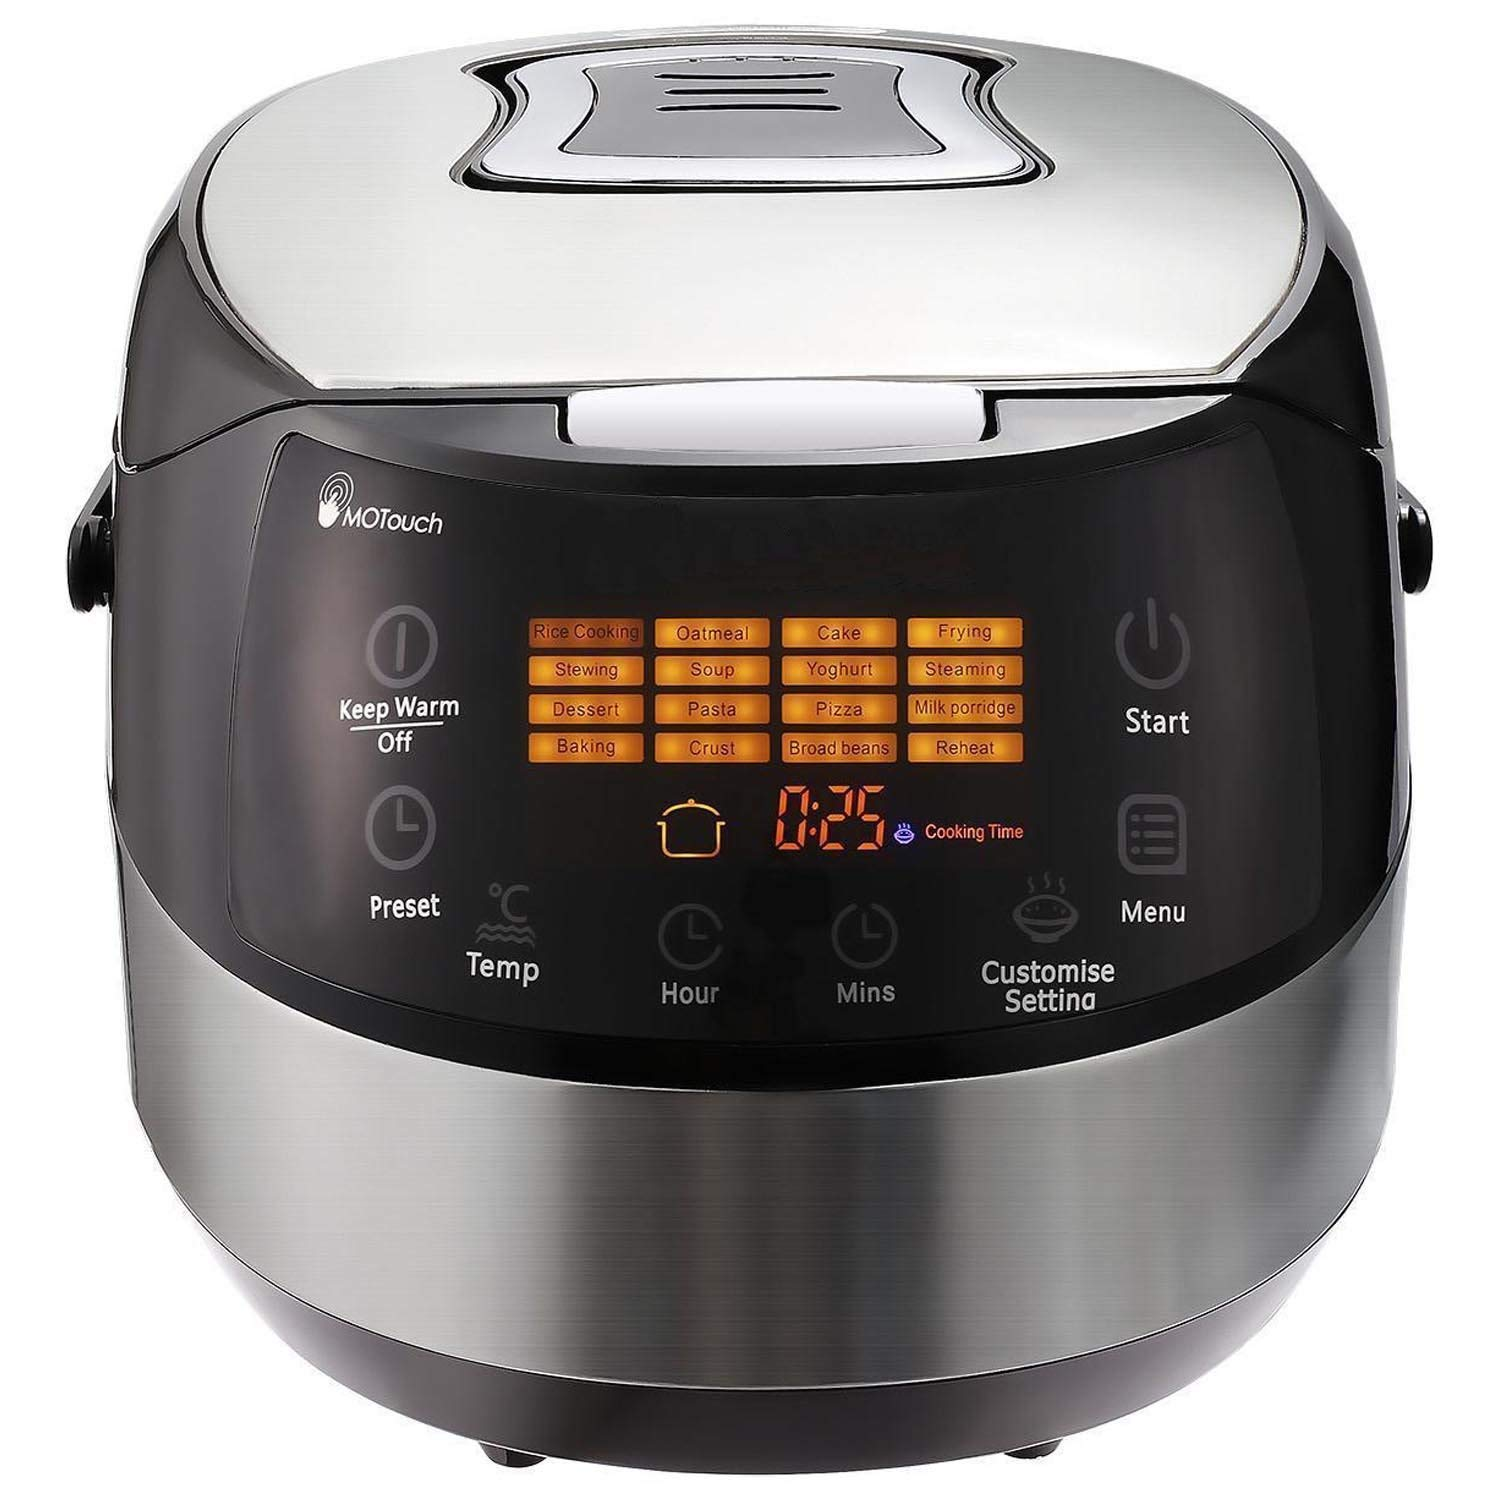 Stainless Steel Electric Rice Cooker, 10Cups 16-Modes LCD Touch Control Multi Functional Rice Cooker with Steamer and Warmer, Non-Stick Surface and 24h Preset Timer 860W, 6QT (US STOCK)